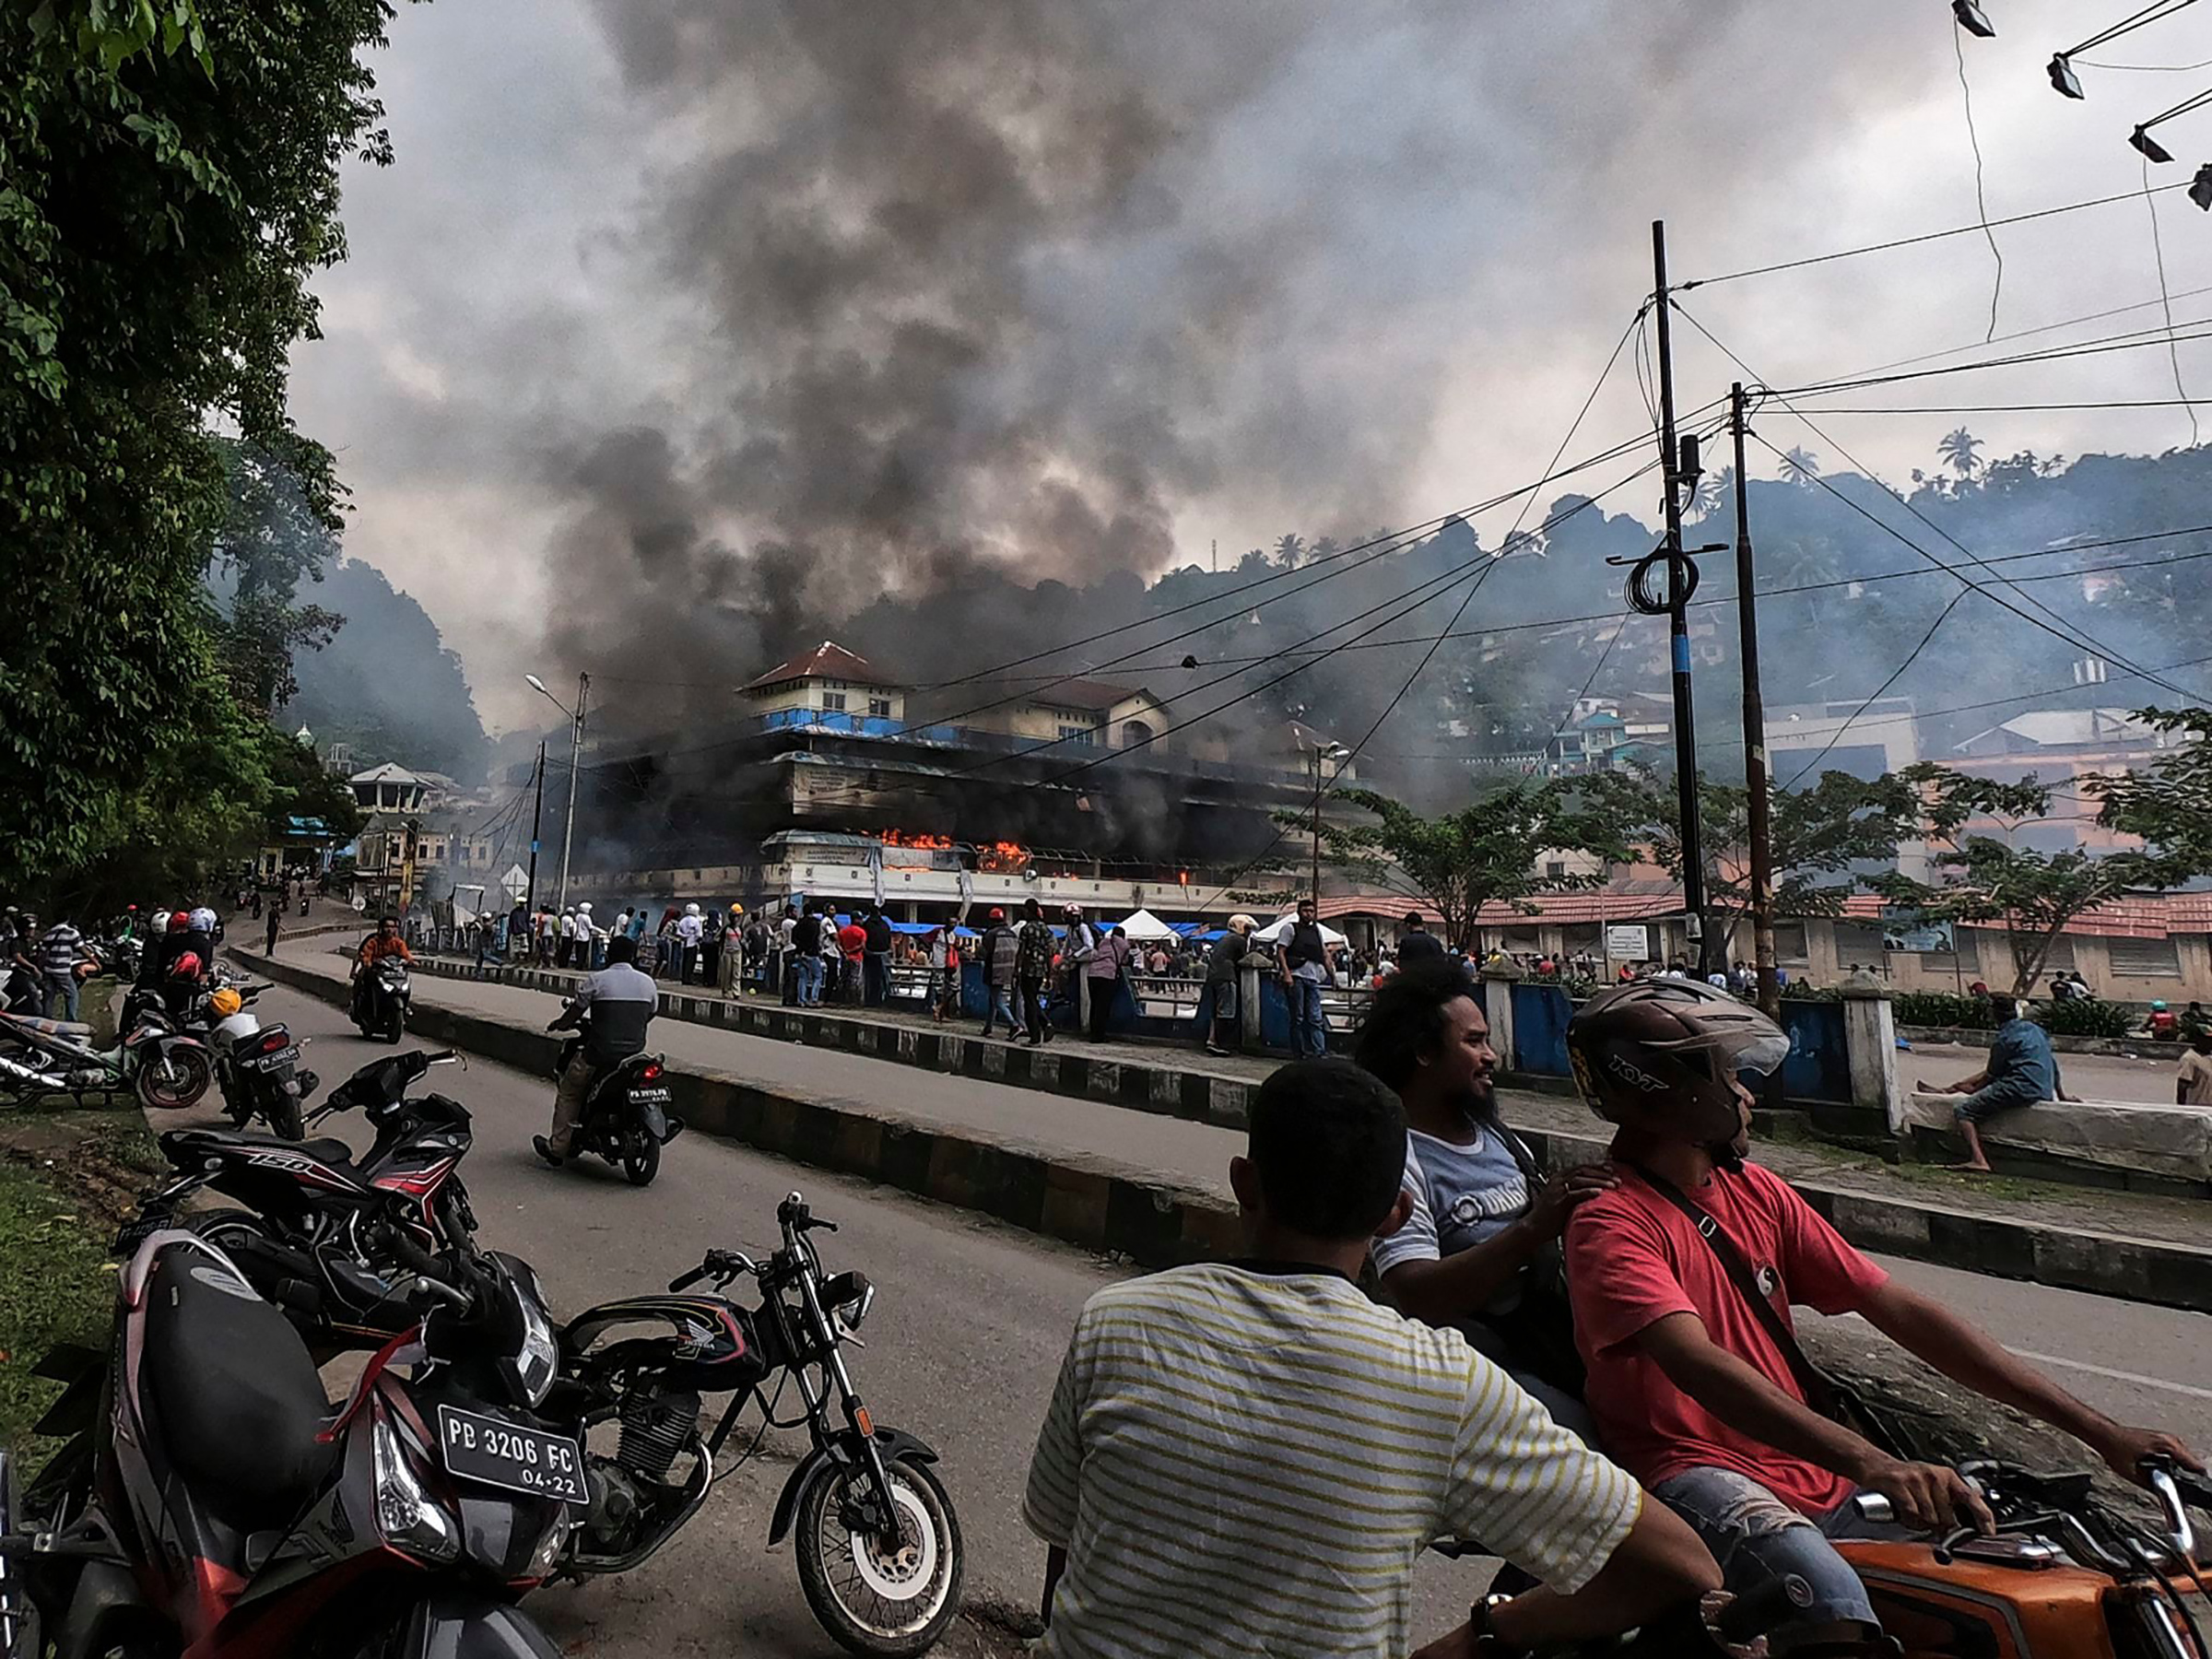 Papuans gather outside the burning Buruni market in Fakfak, West Papua, after it was torched by protesters on Aug. 2019 as unrest triggered by accusations that security insulted Papuan students in Surabaya continued